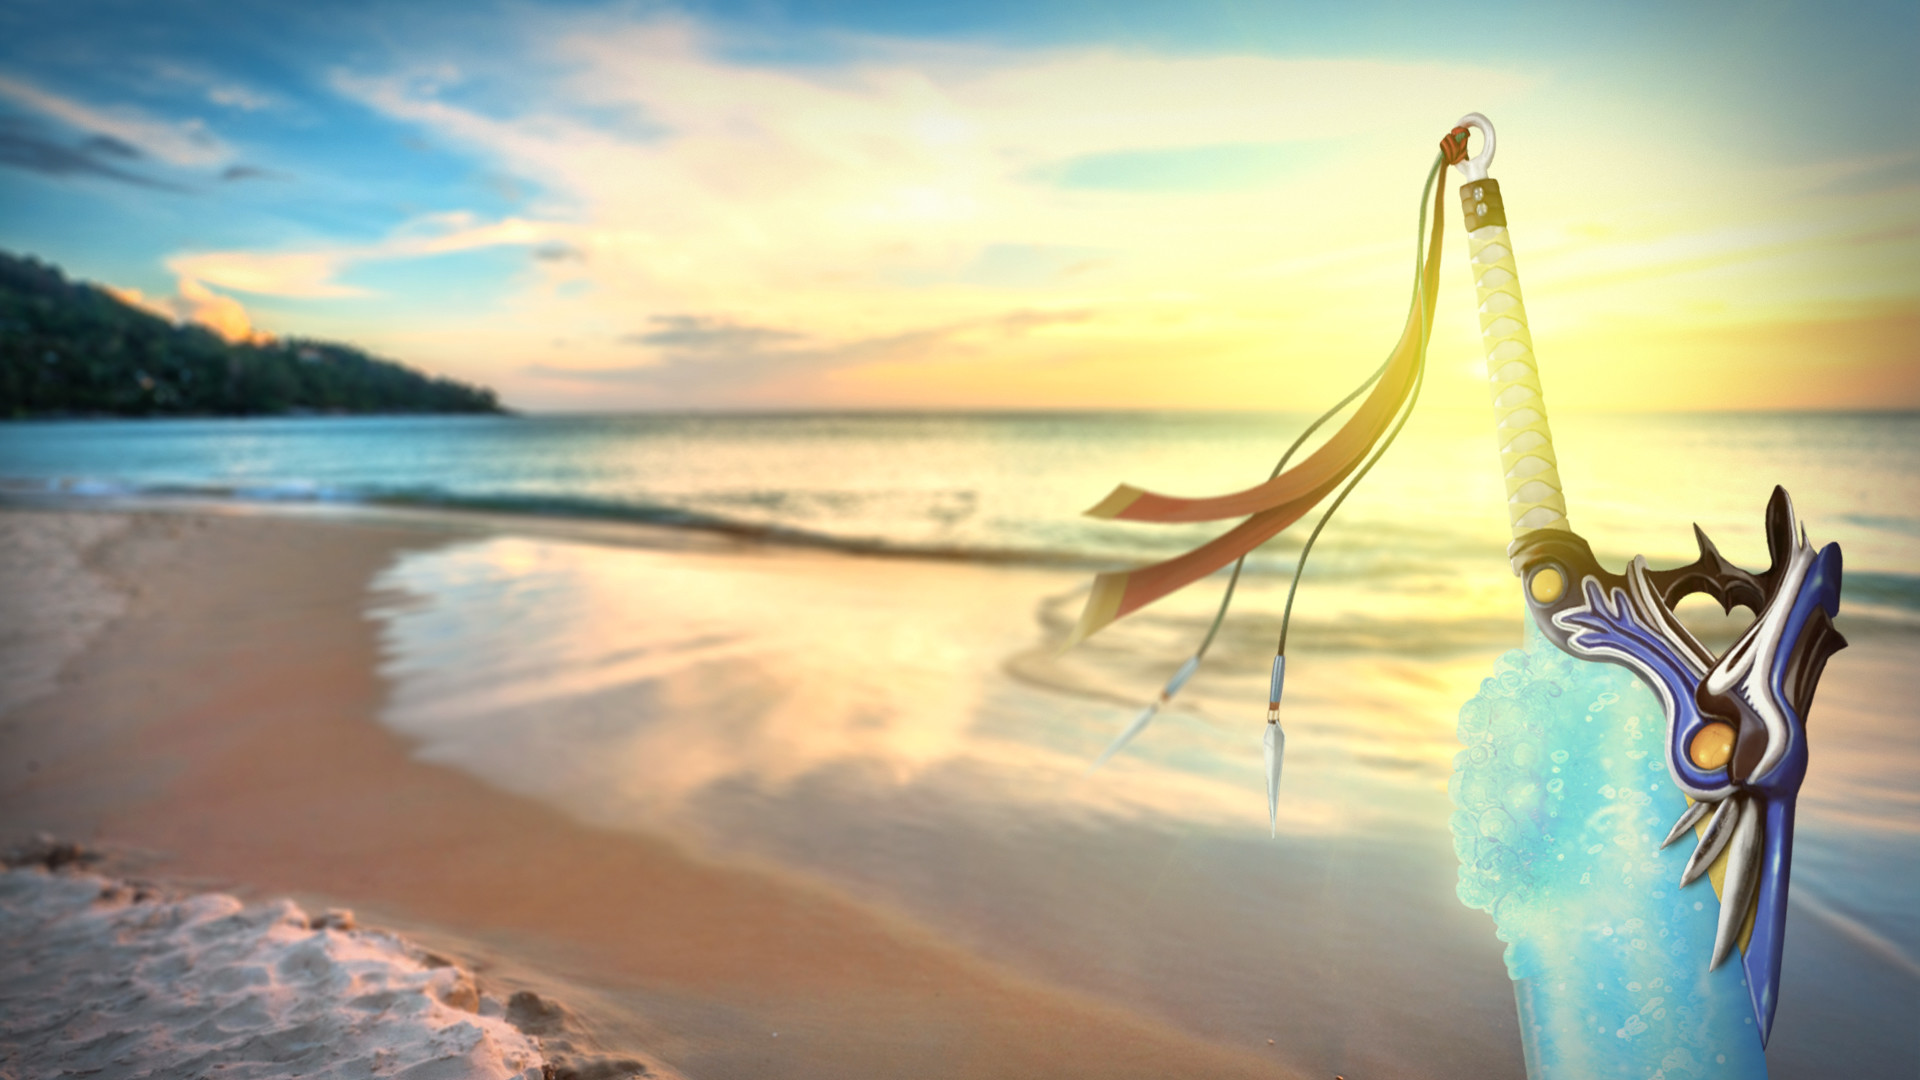 Final Fantasy X Wallpaper 71 Images